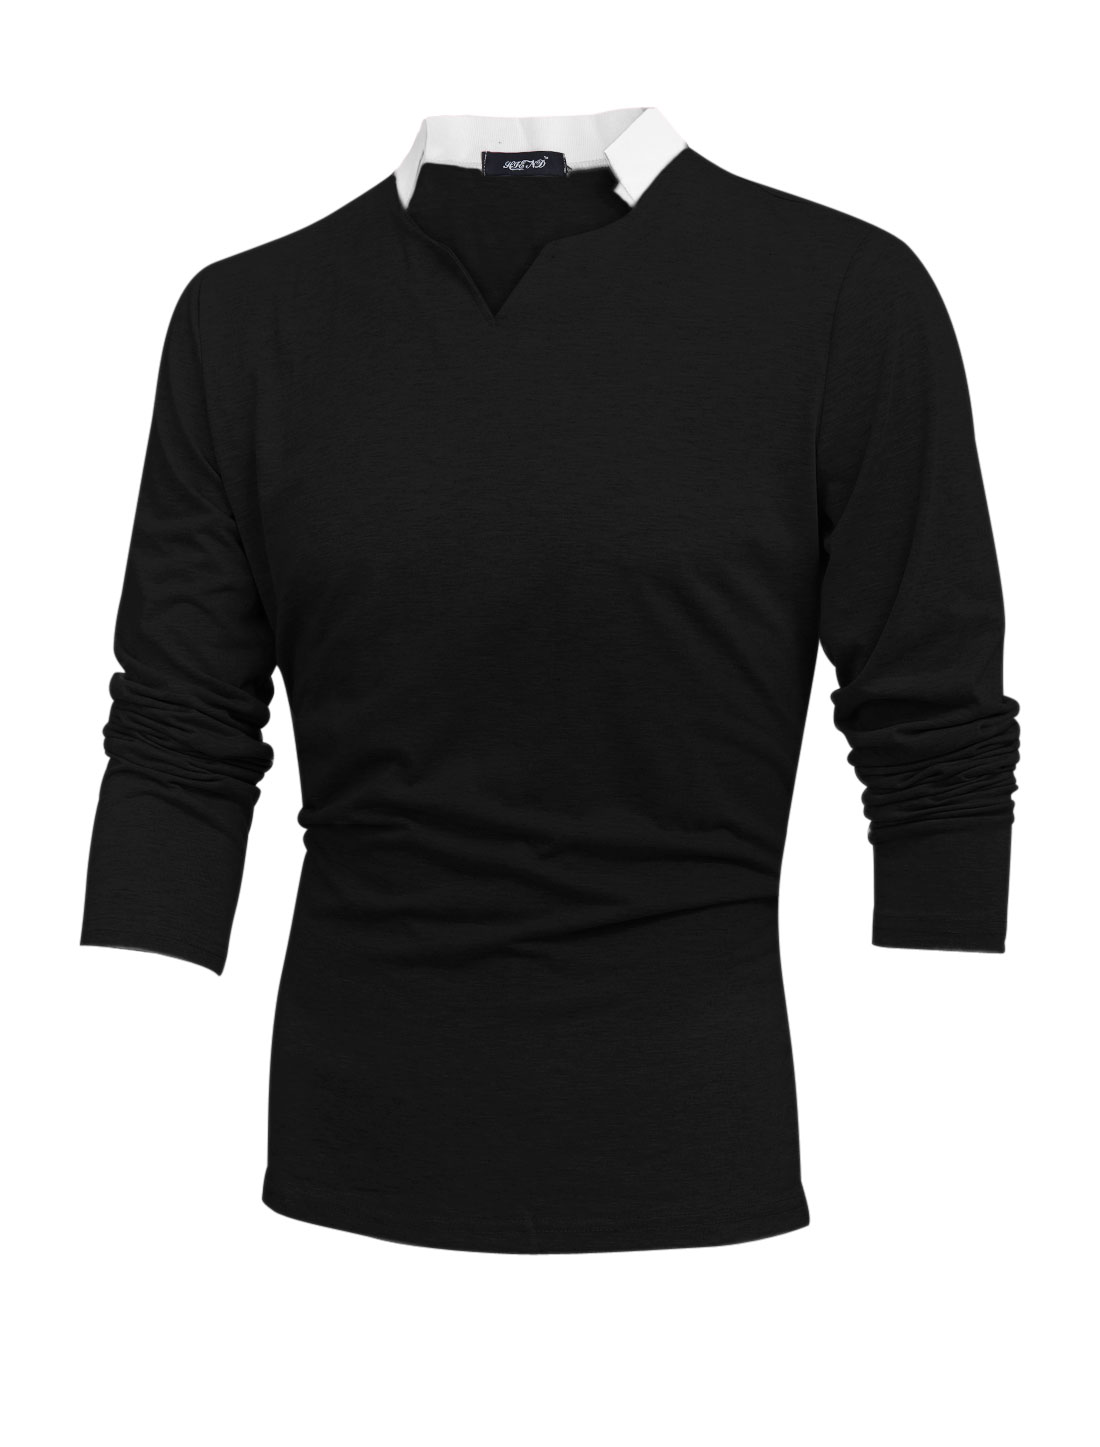 Men Contrast Color Split Neck Long Sleeve Pullover Casual T-shirt Black M